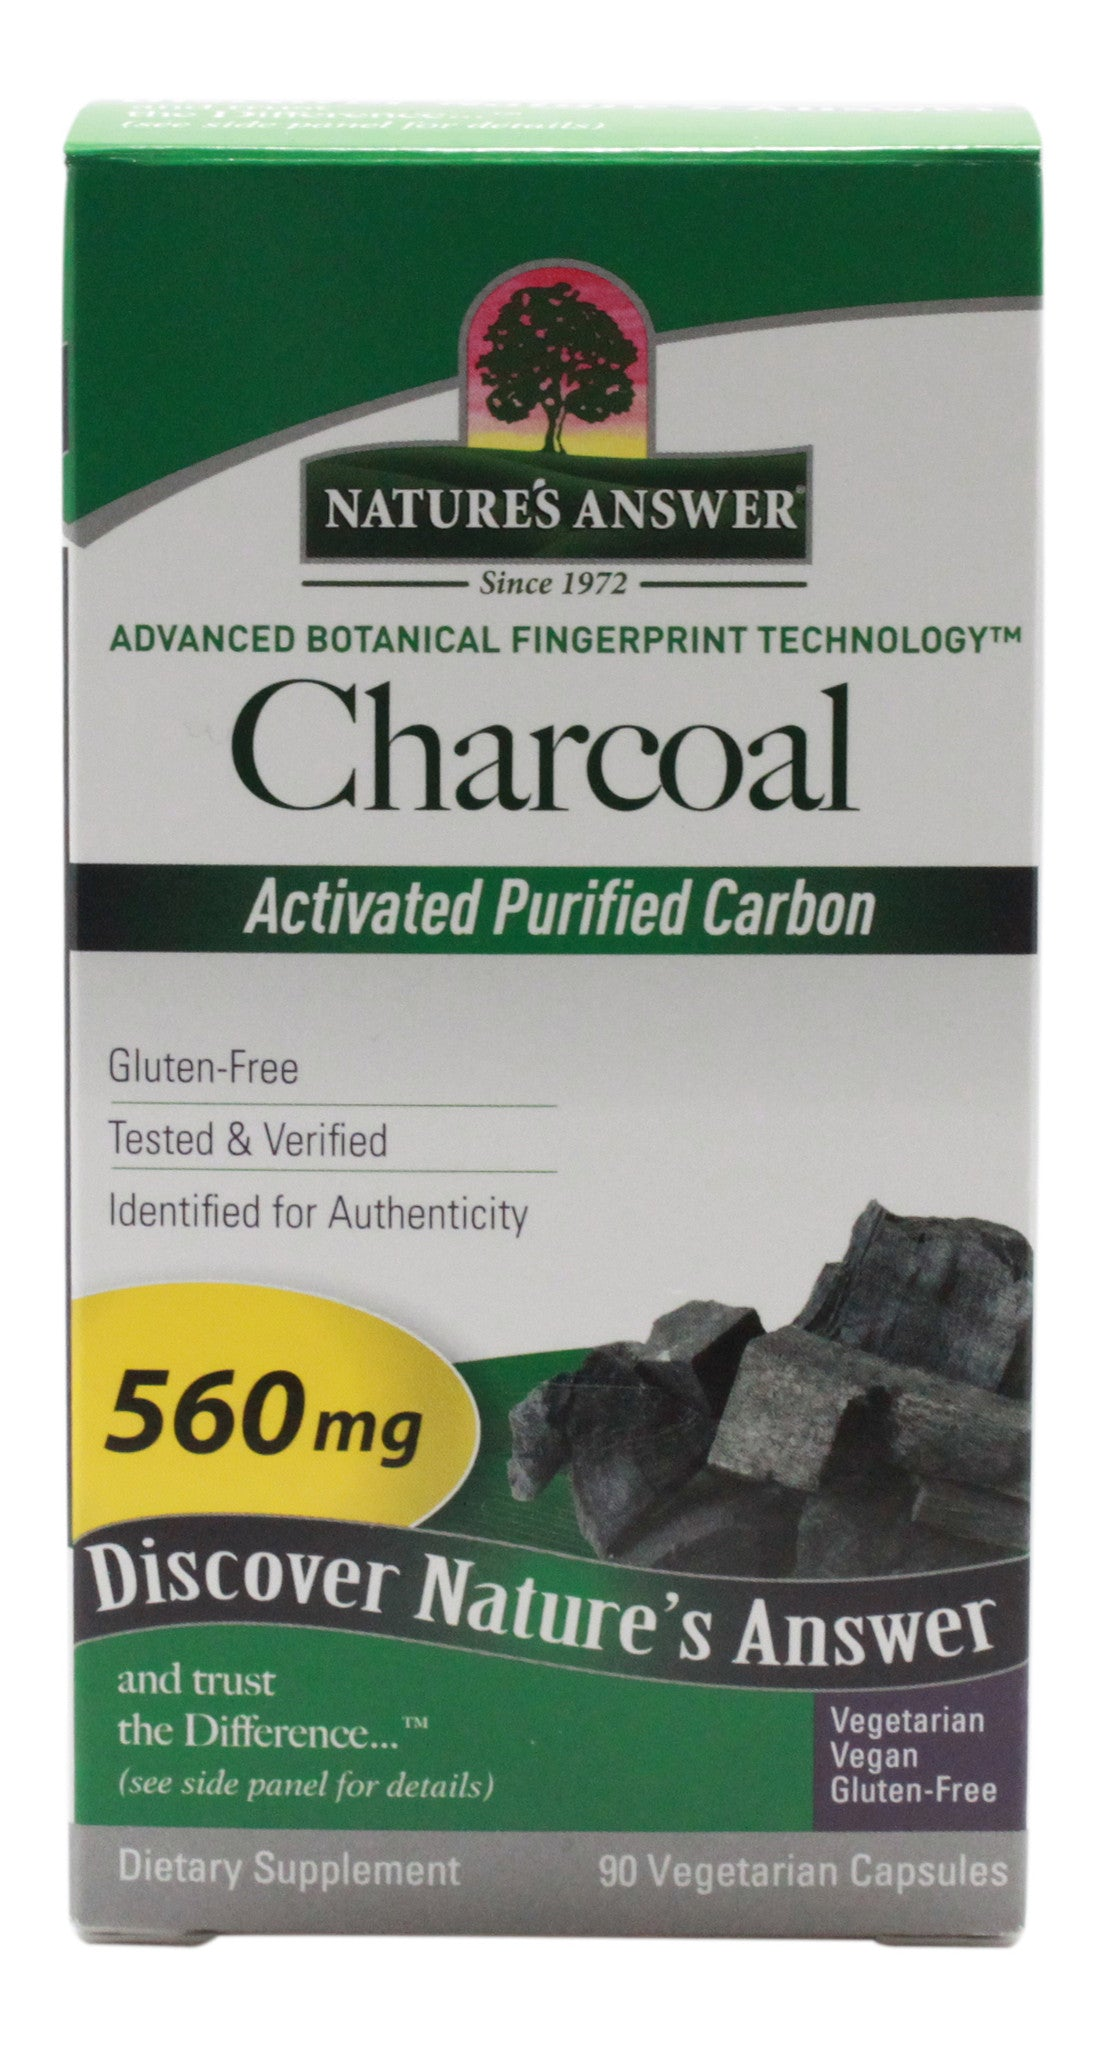 Charcoal Activated Purified Carbon 560mg - 90 Capsules - Front